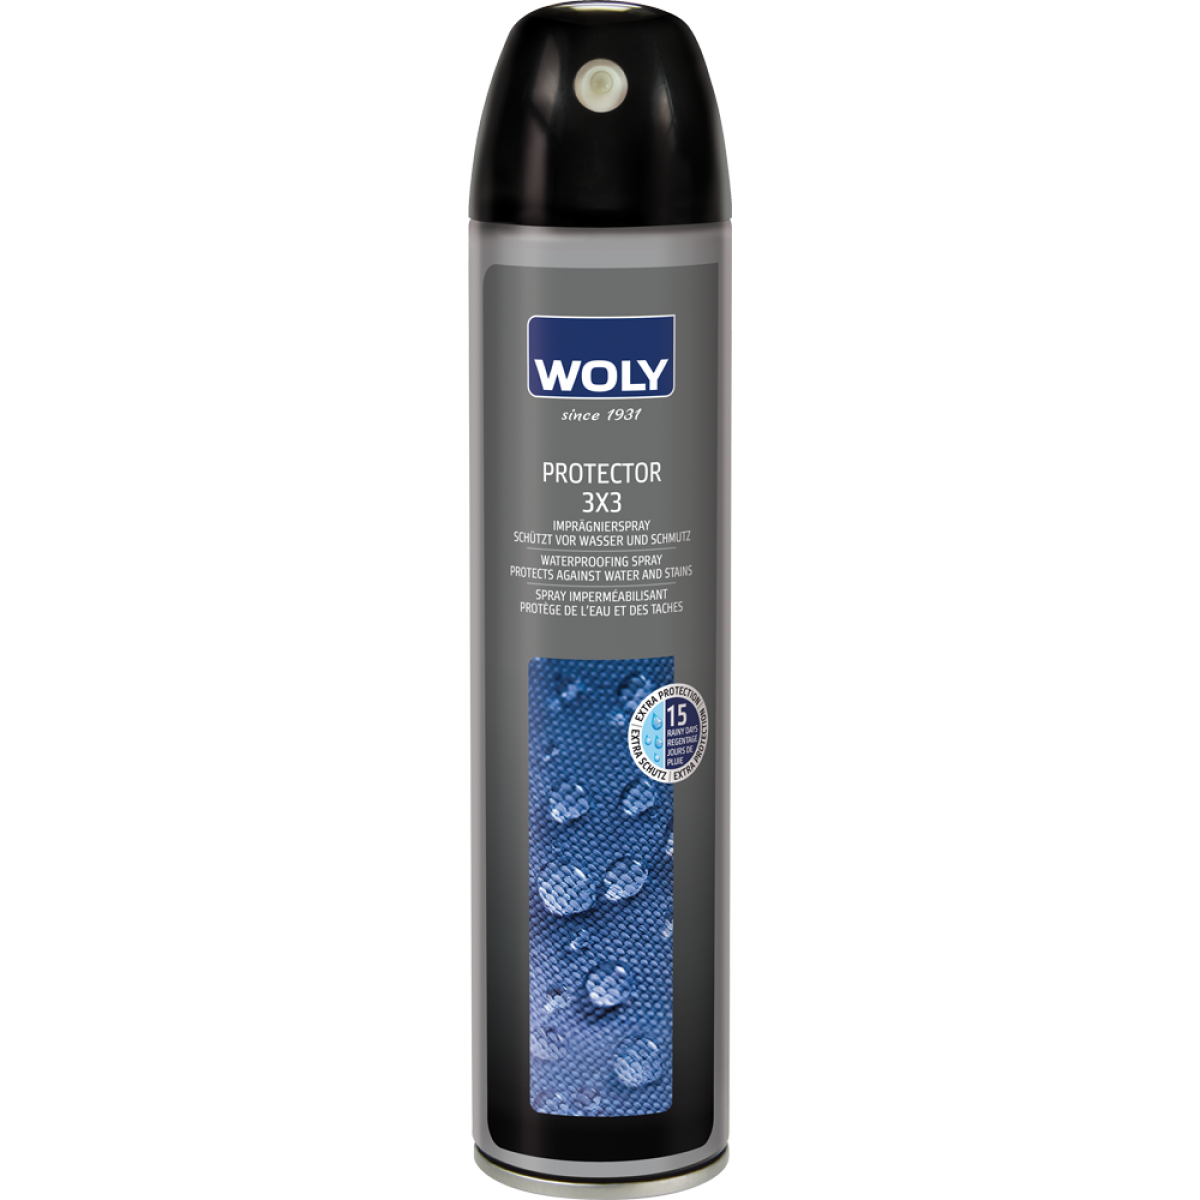 Woly 3x3 protector 300 ml-32